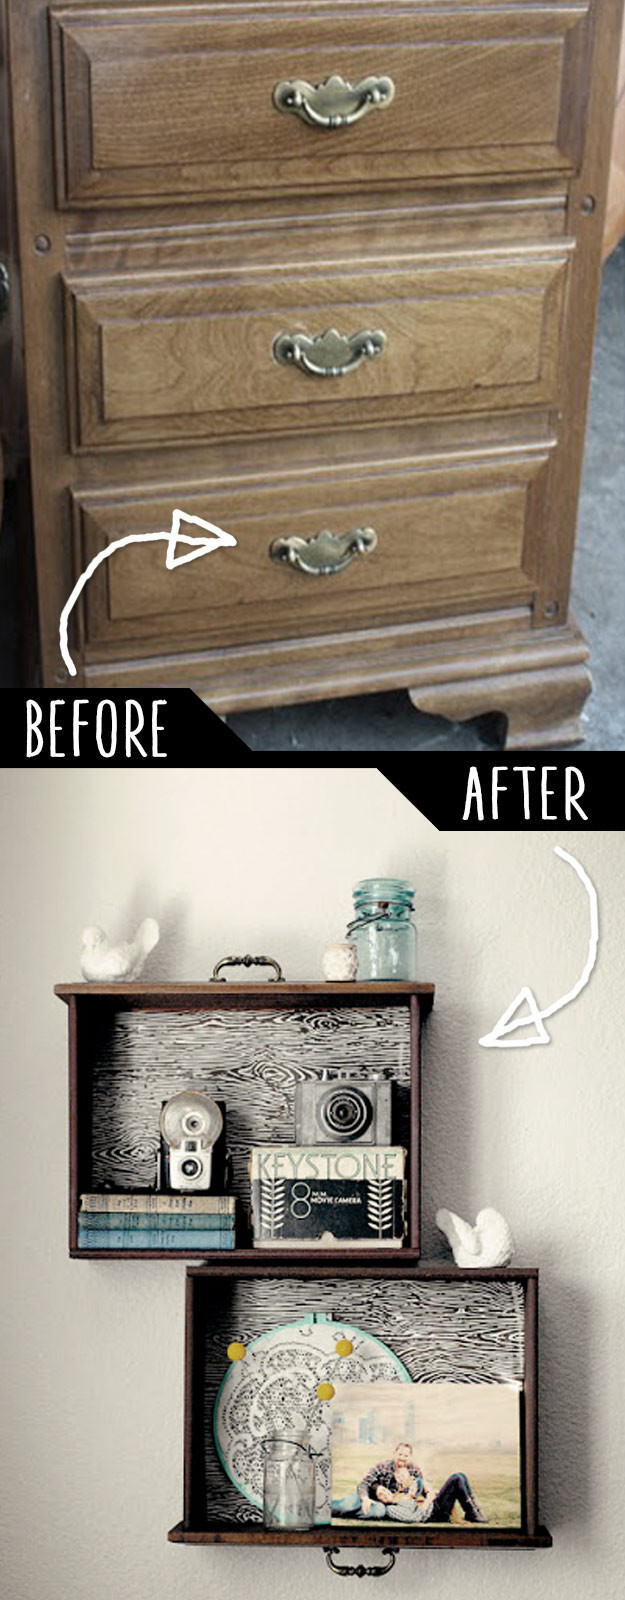 Cheap Shelves Inspirational 39 Clever Diy Furniture Hacks Diy Joy Of Incredible 45 Pictures Cheap Shelves